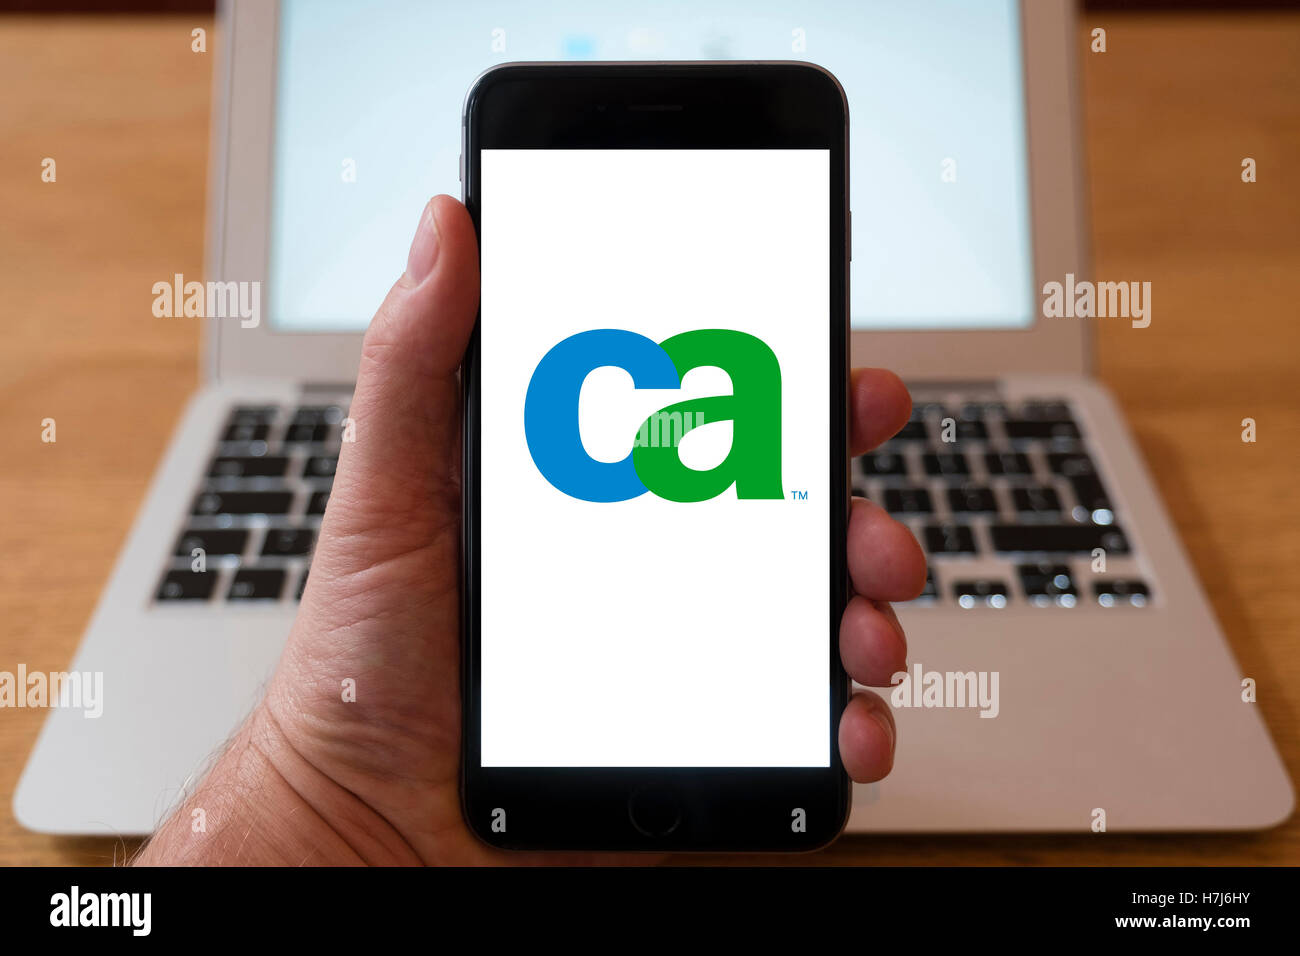 Using iPhone smart phone to display logo of CA Technologies , information technology company Stock Photo